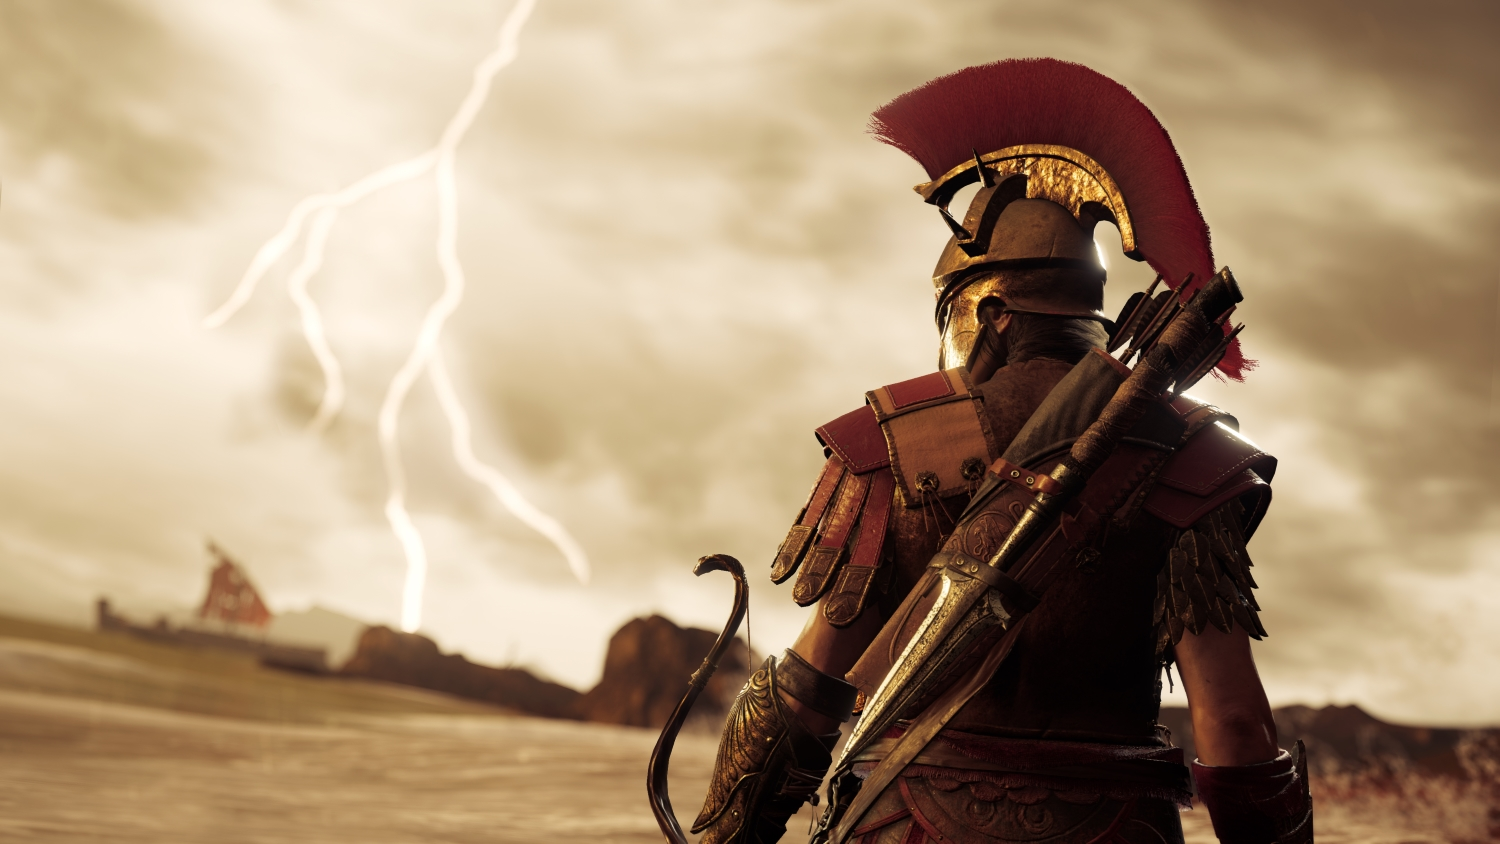 Assassin's Creed Odyssey - an unsteady start for Ubisoft's latest